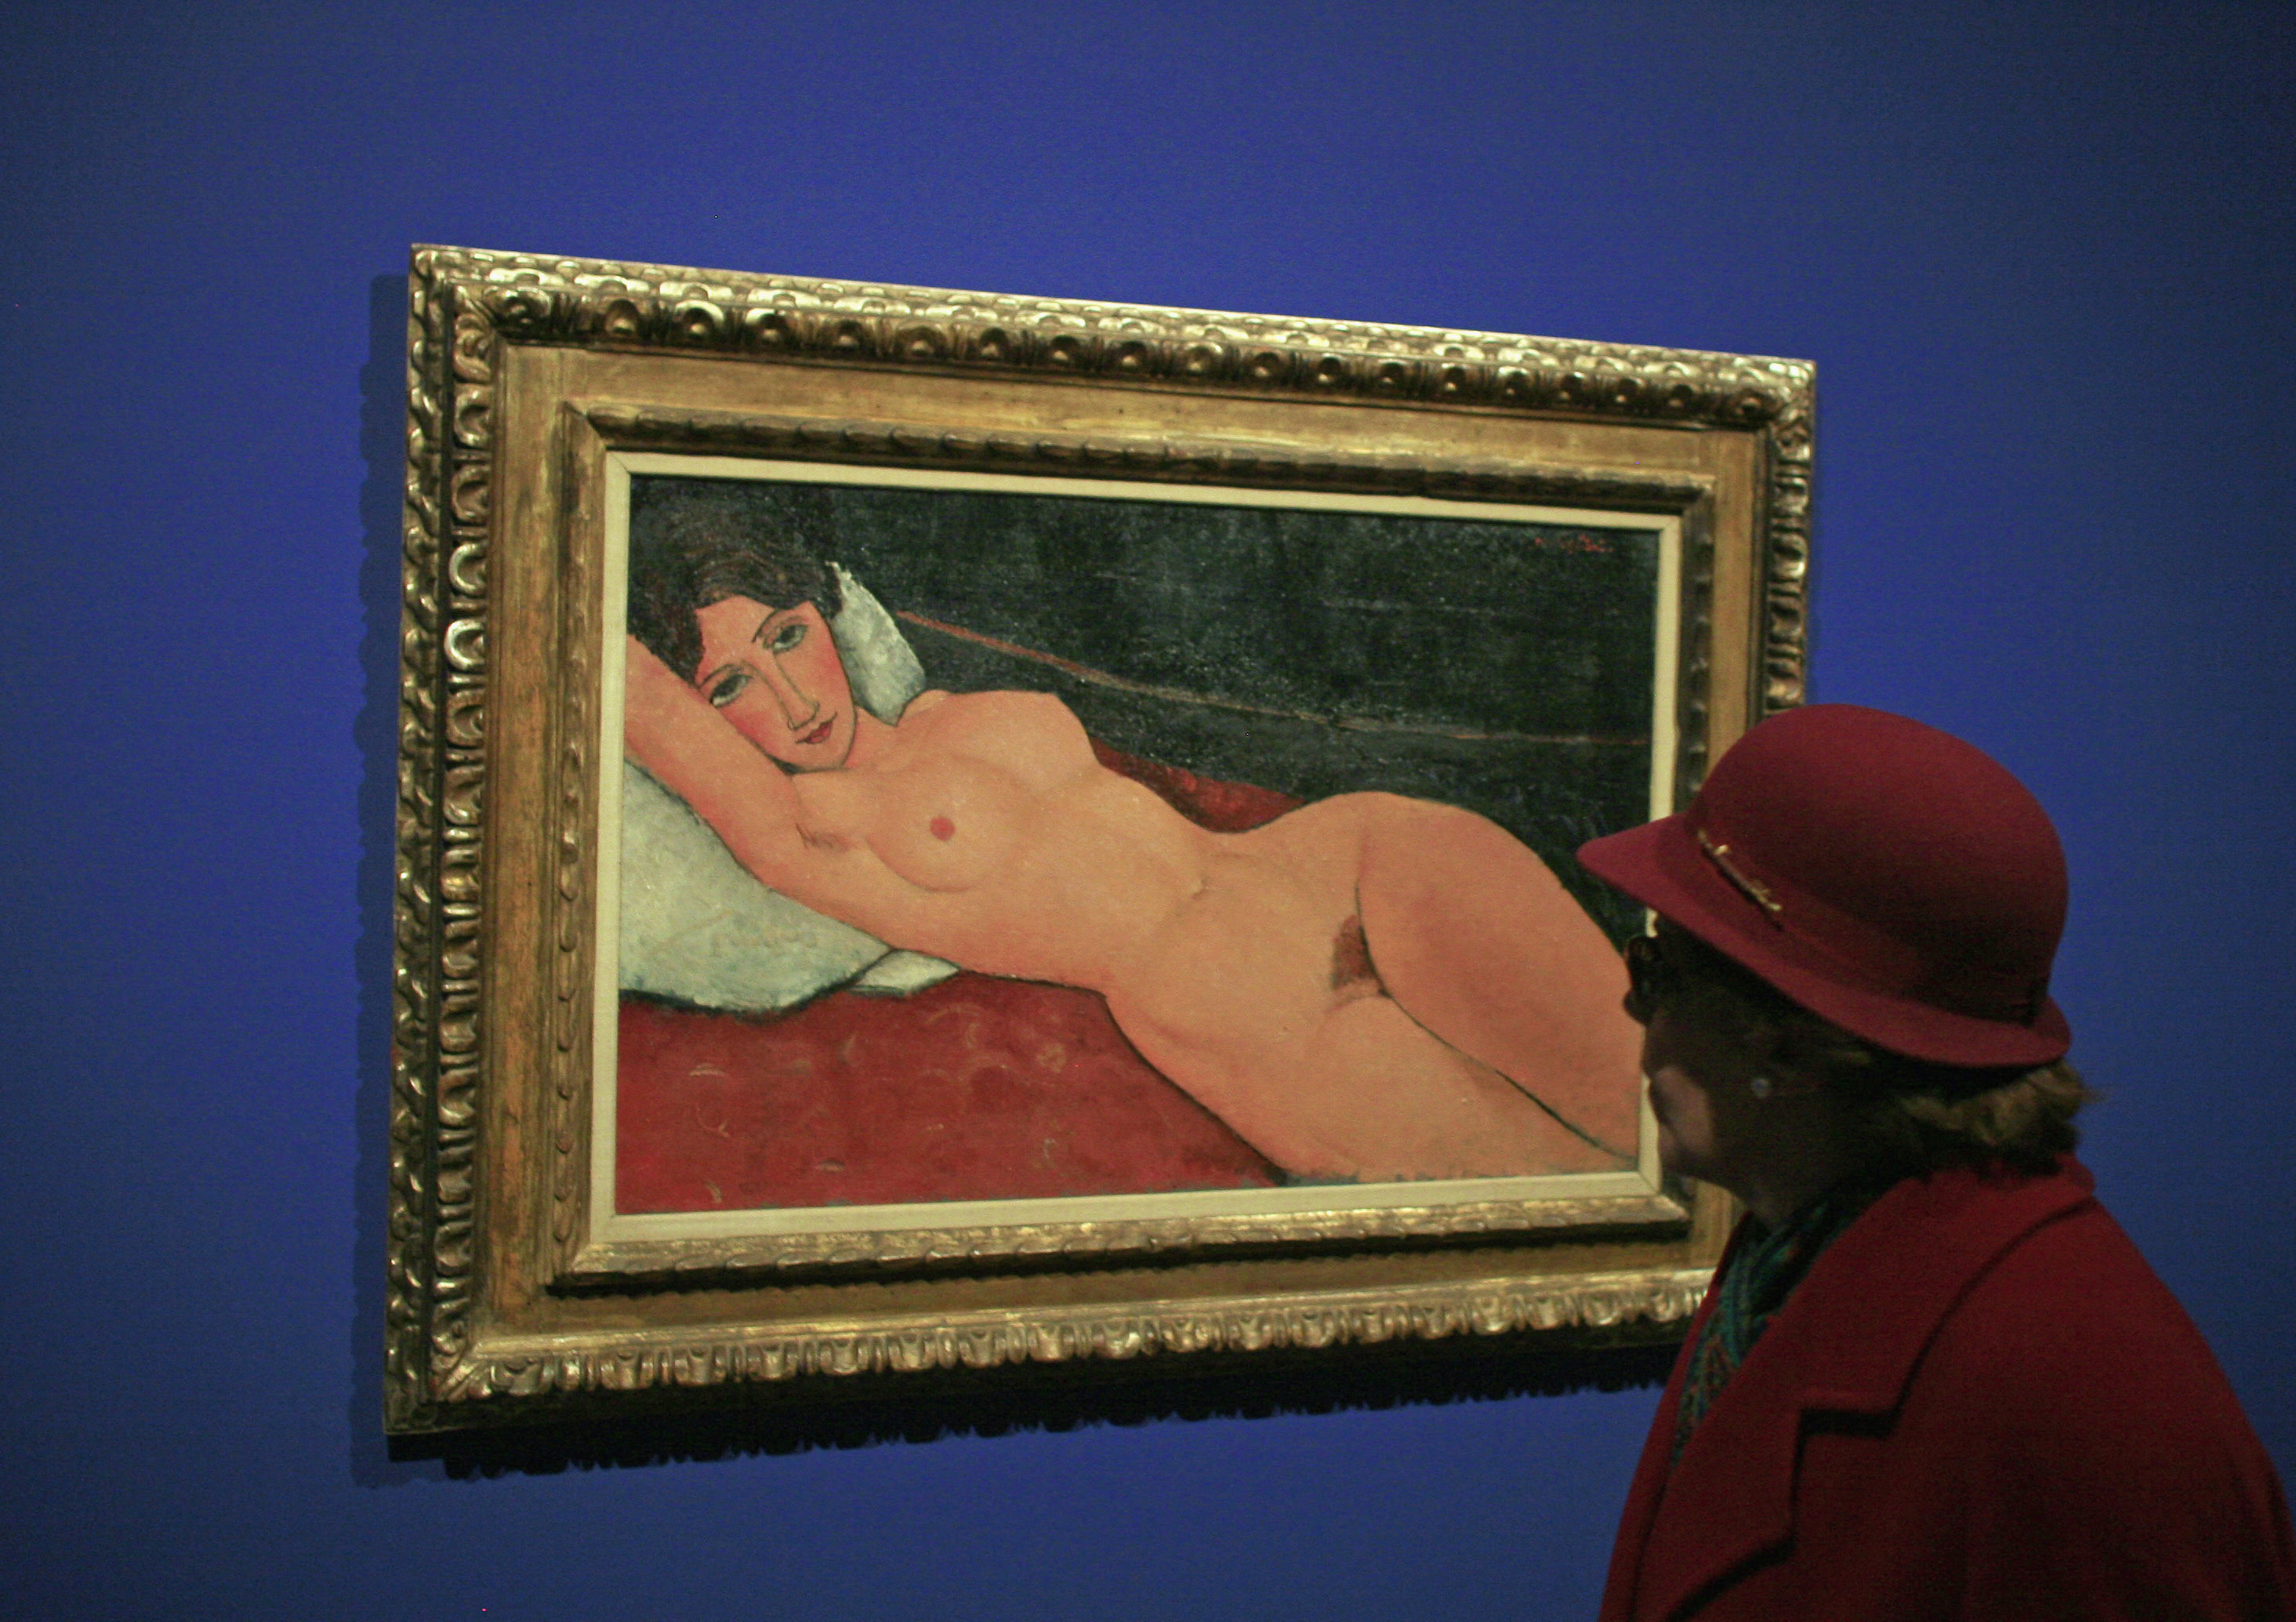 Nu Couché caused a scandal when first exhibited in 1917